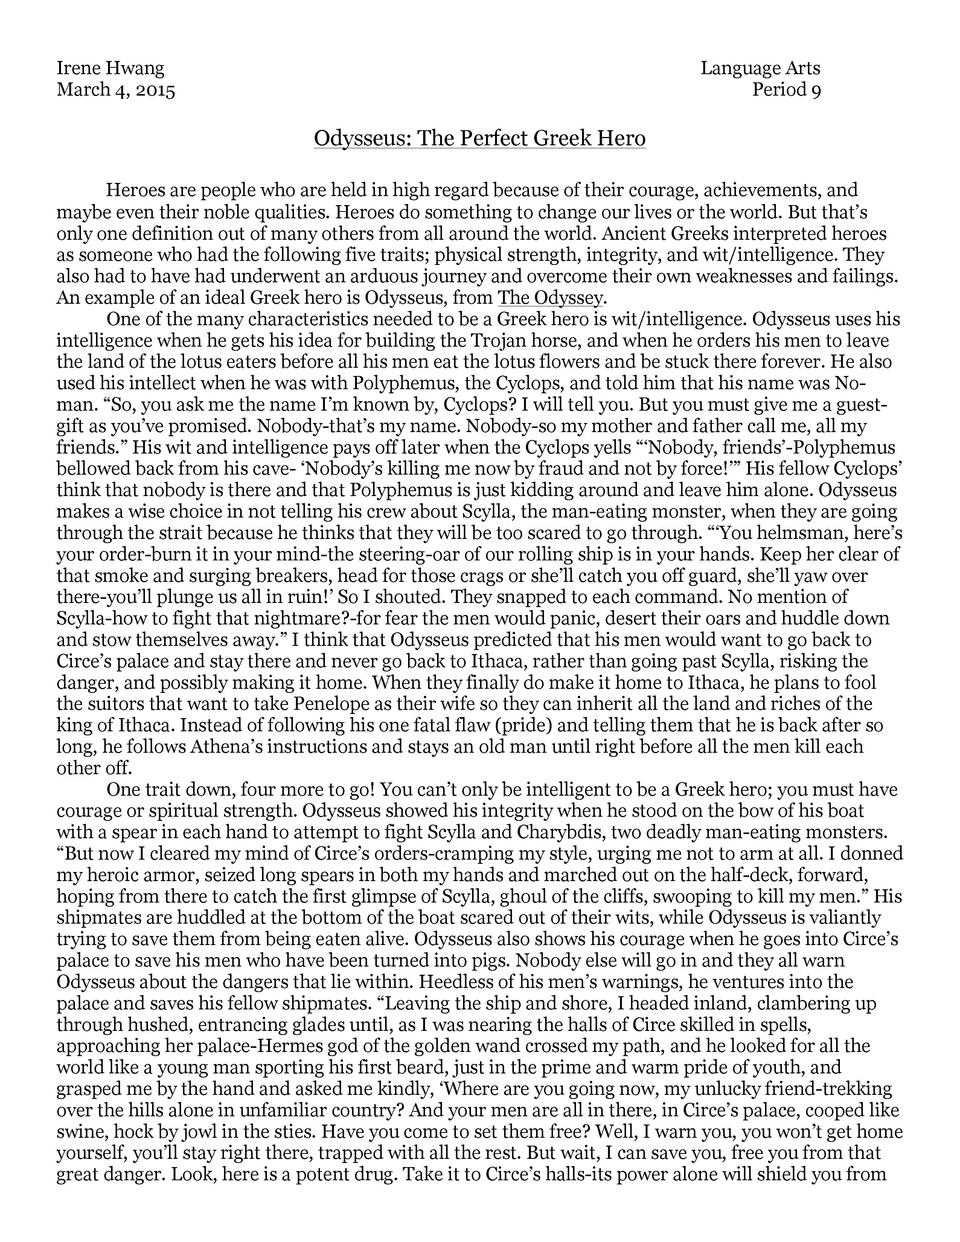 heroes qualities essay Like the typical hero, phoenix is on a diffucult journey, during which, she must face and overcome numerous obstacles in this case, various forms of racism she is courageous, sometimes prideful, and always humble phoenix carries herself with dignity in all of these things she fulfills the role of a hero.